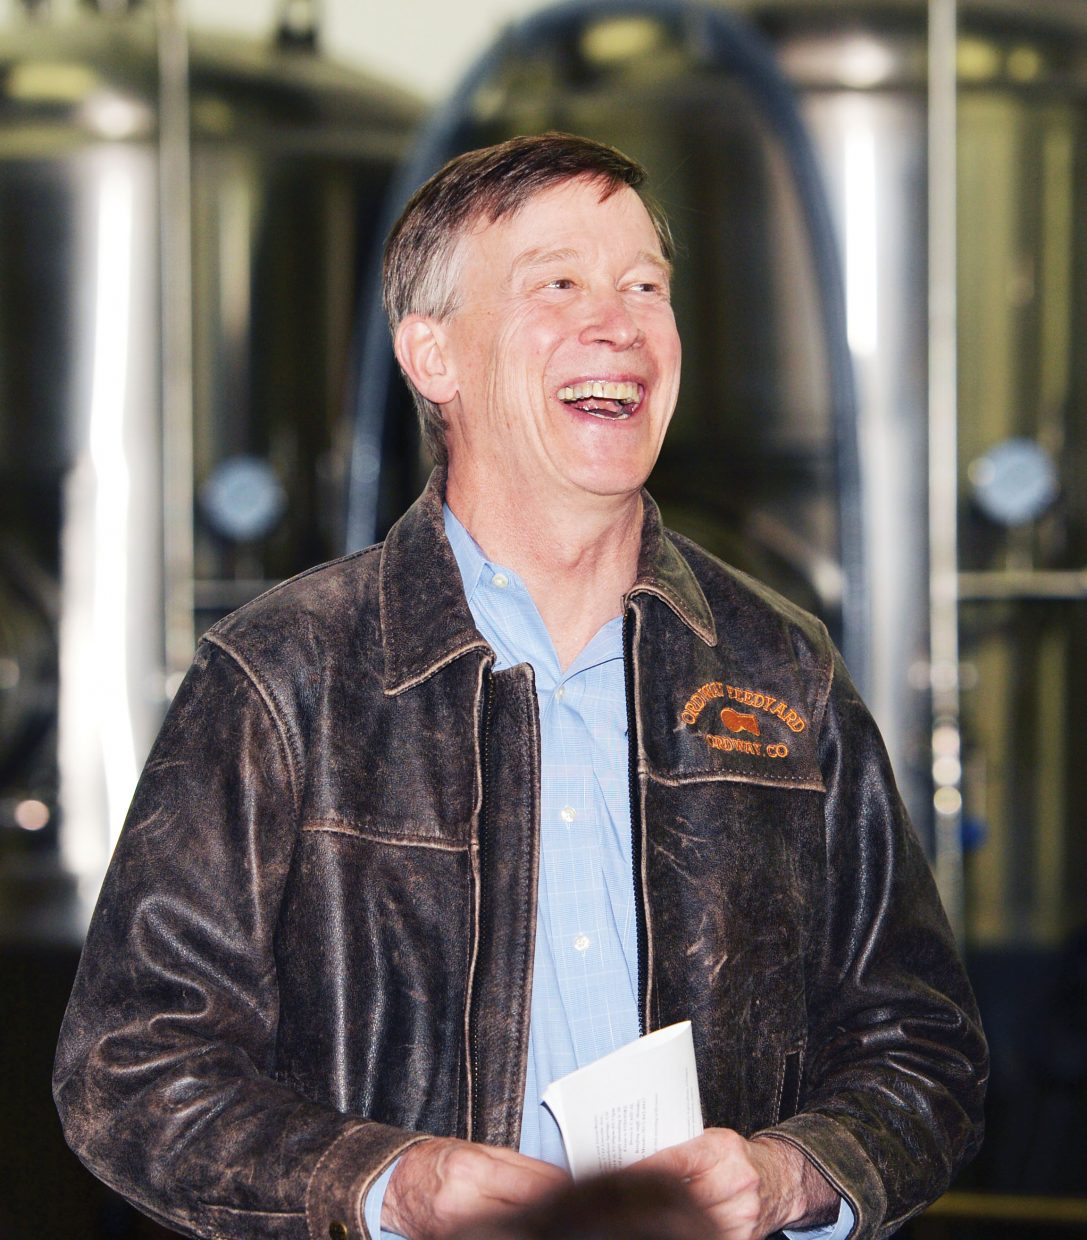 Colorado Gov. John Hickenlooper visited Storm Peak Brewing Co. during a visit to Steamboat Springs on Monday afternoon.